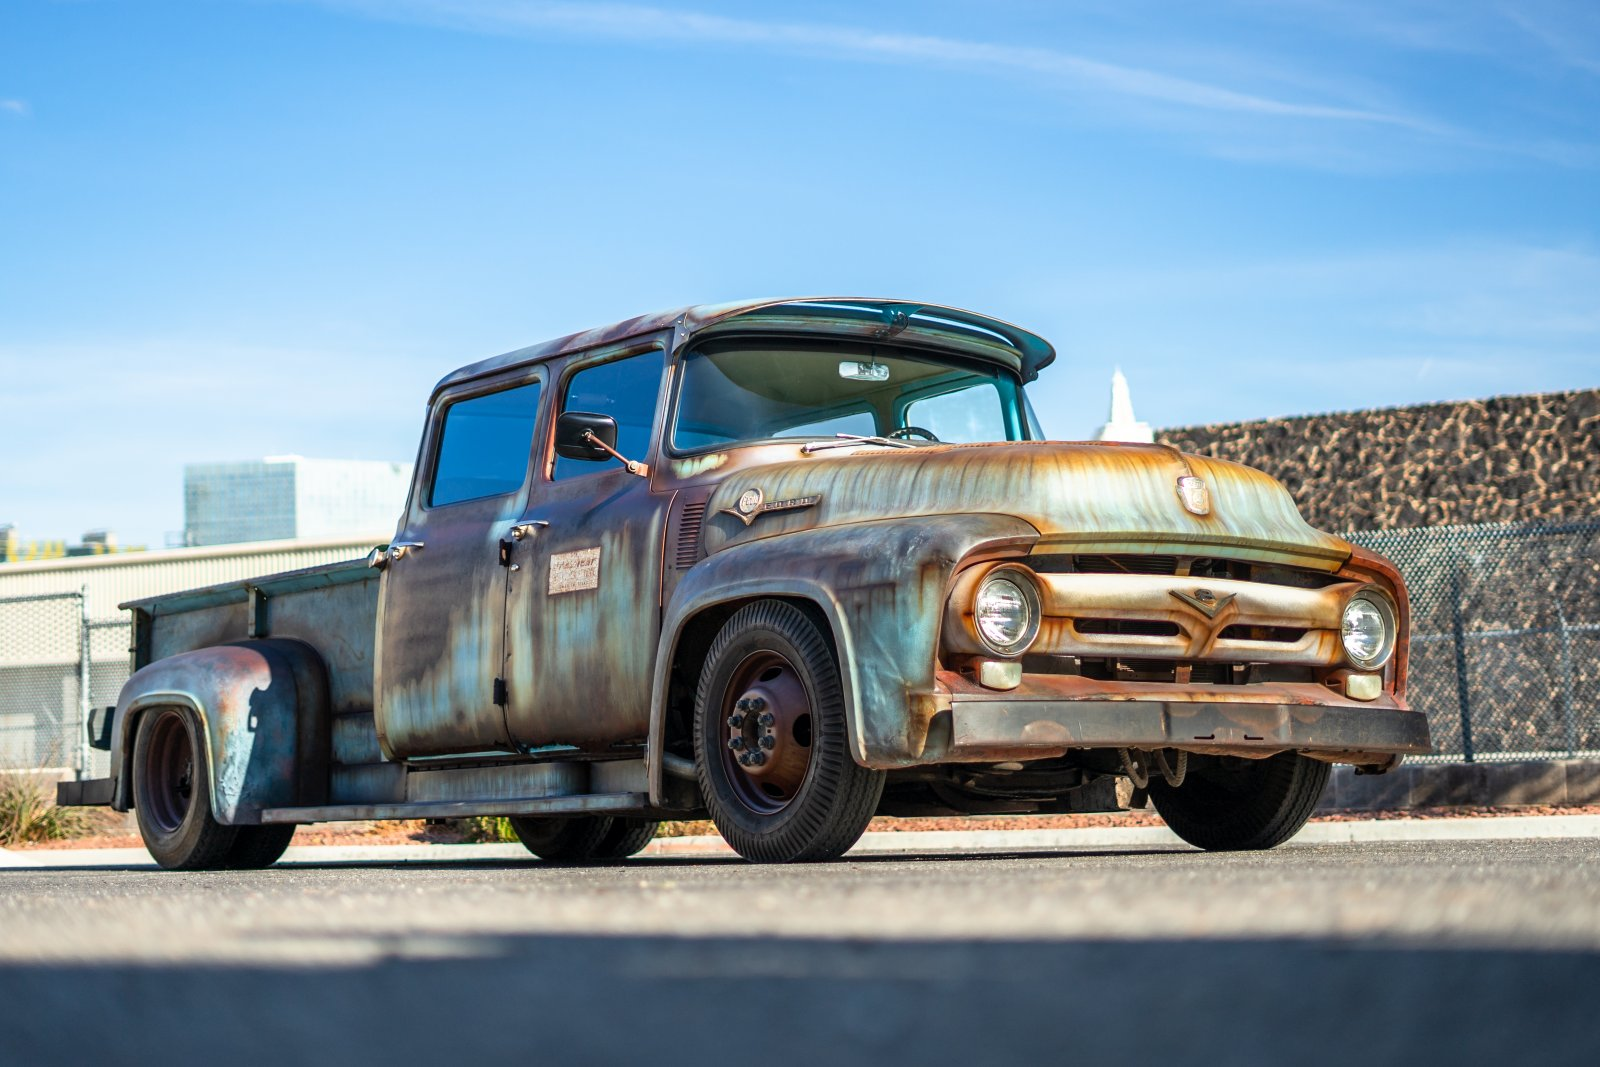 1956 Ford F600 Crew Cab Ratrod Turned Out 2.JPG